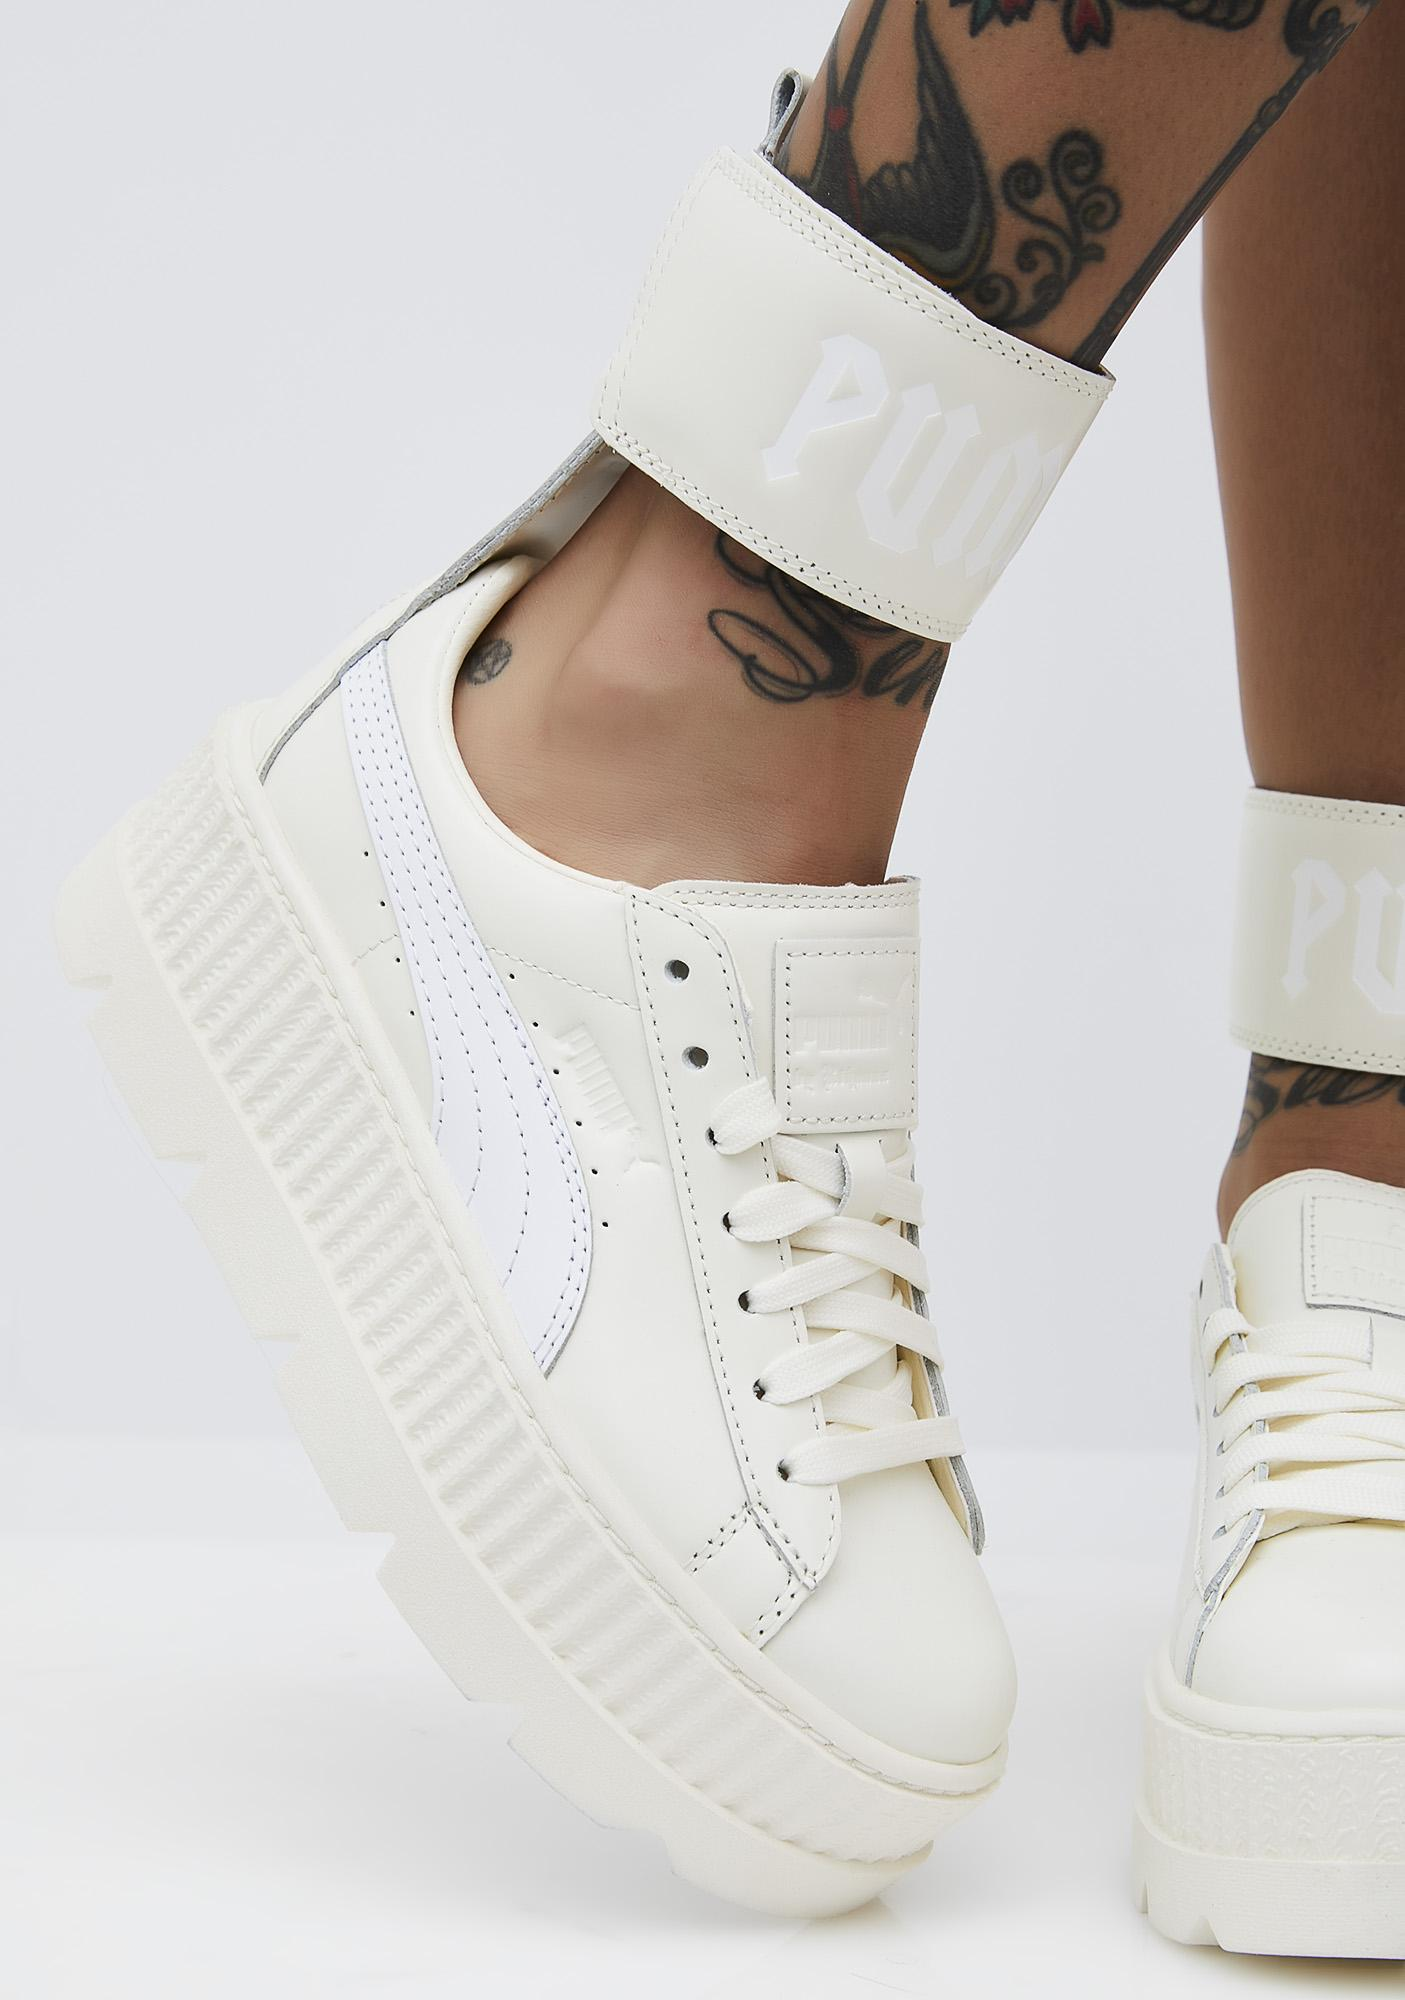 ANKLE STRAP SNEAKER - FOOTWEAR - Low-tops & sneakers Fenty Puma by Rihanna